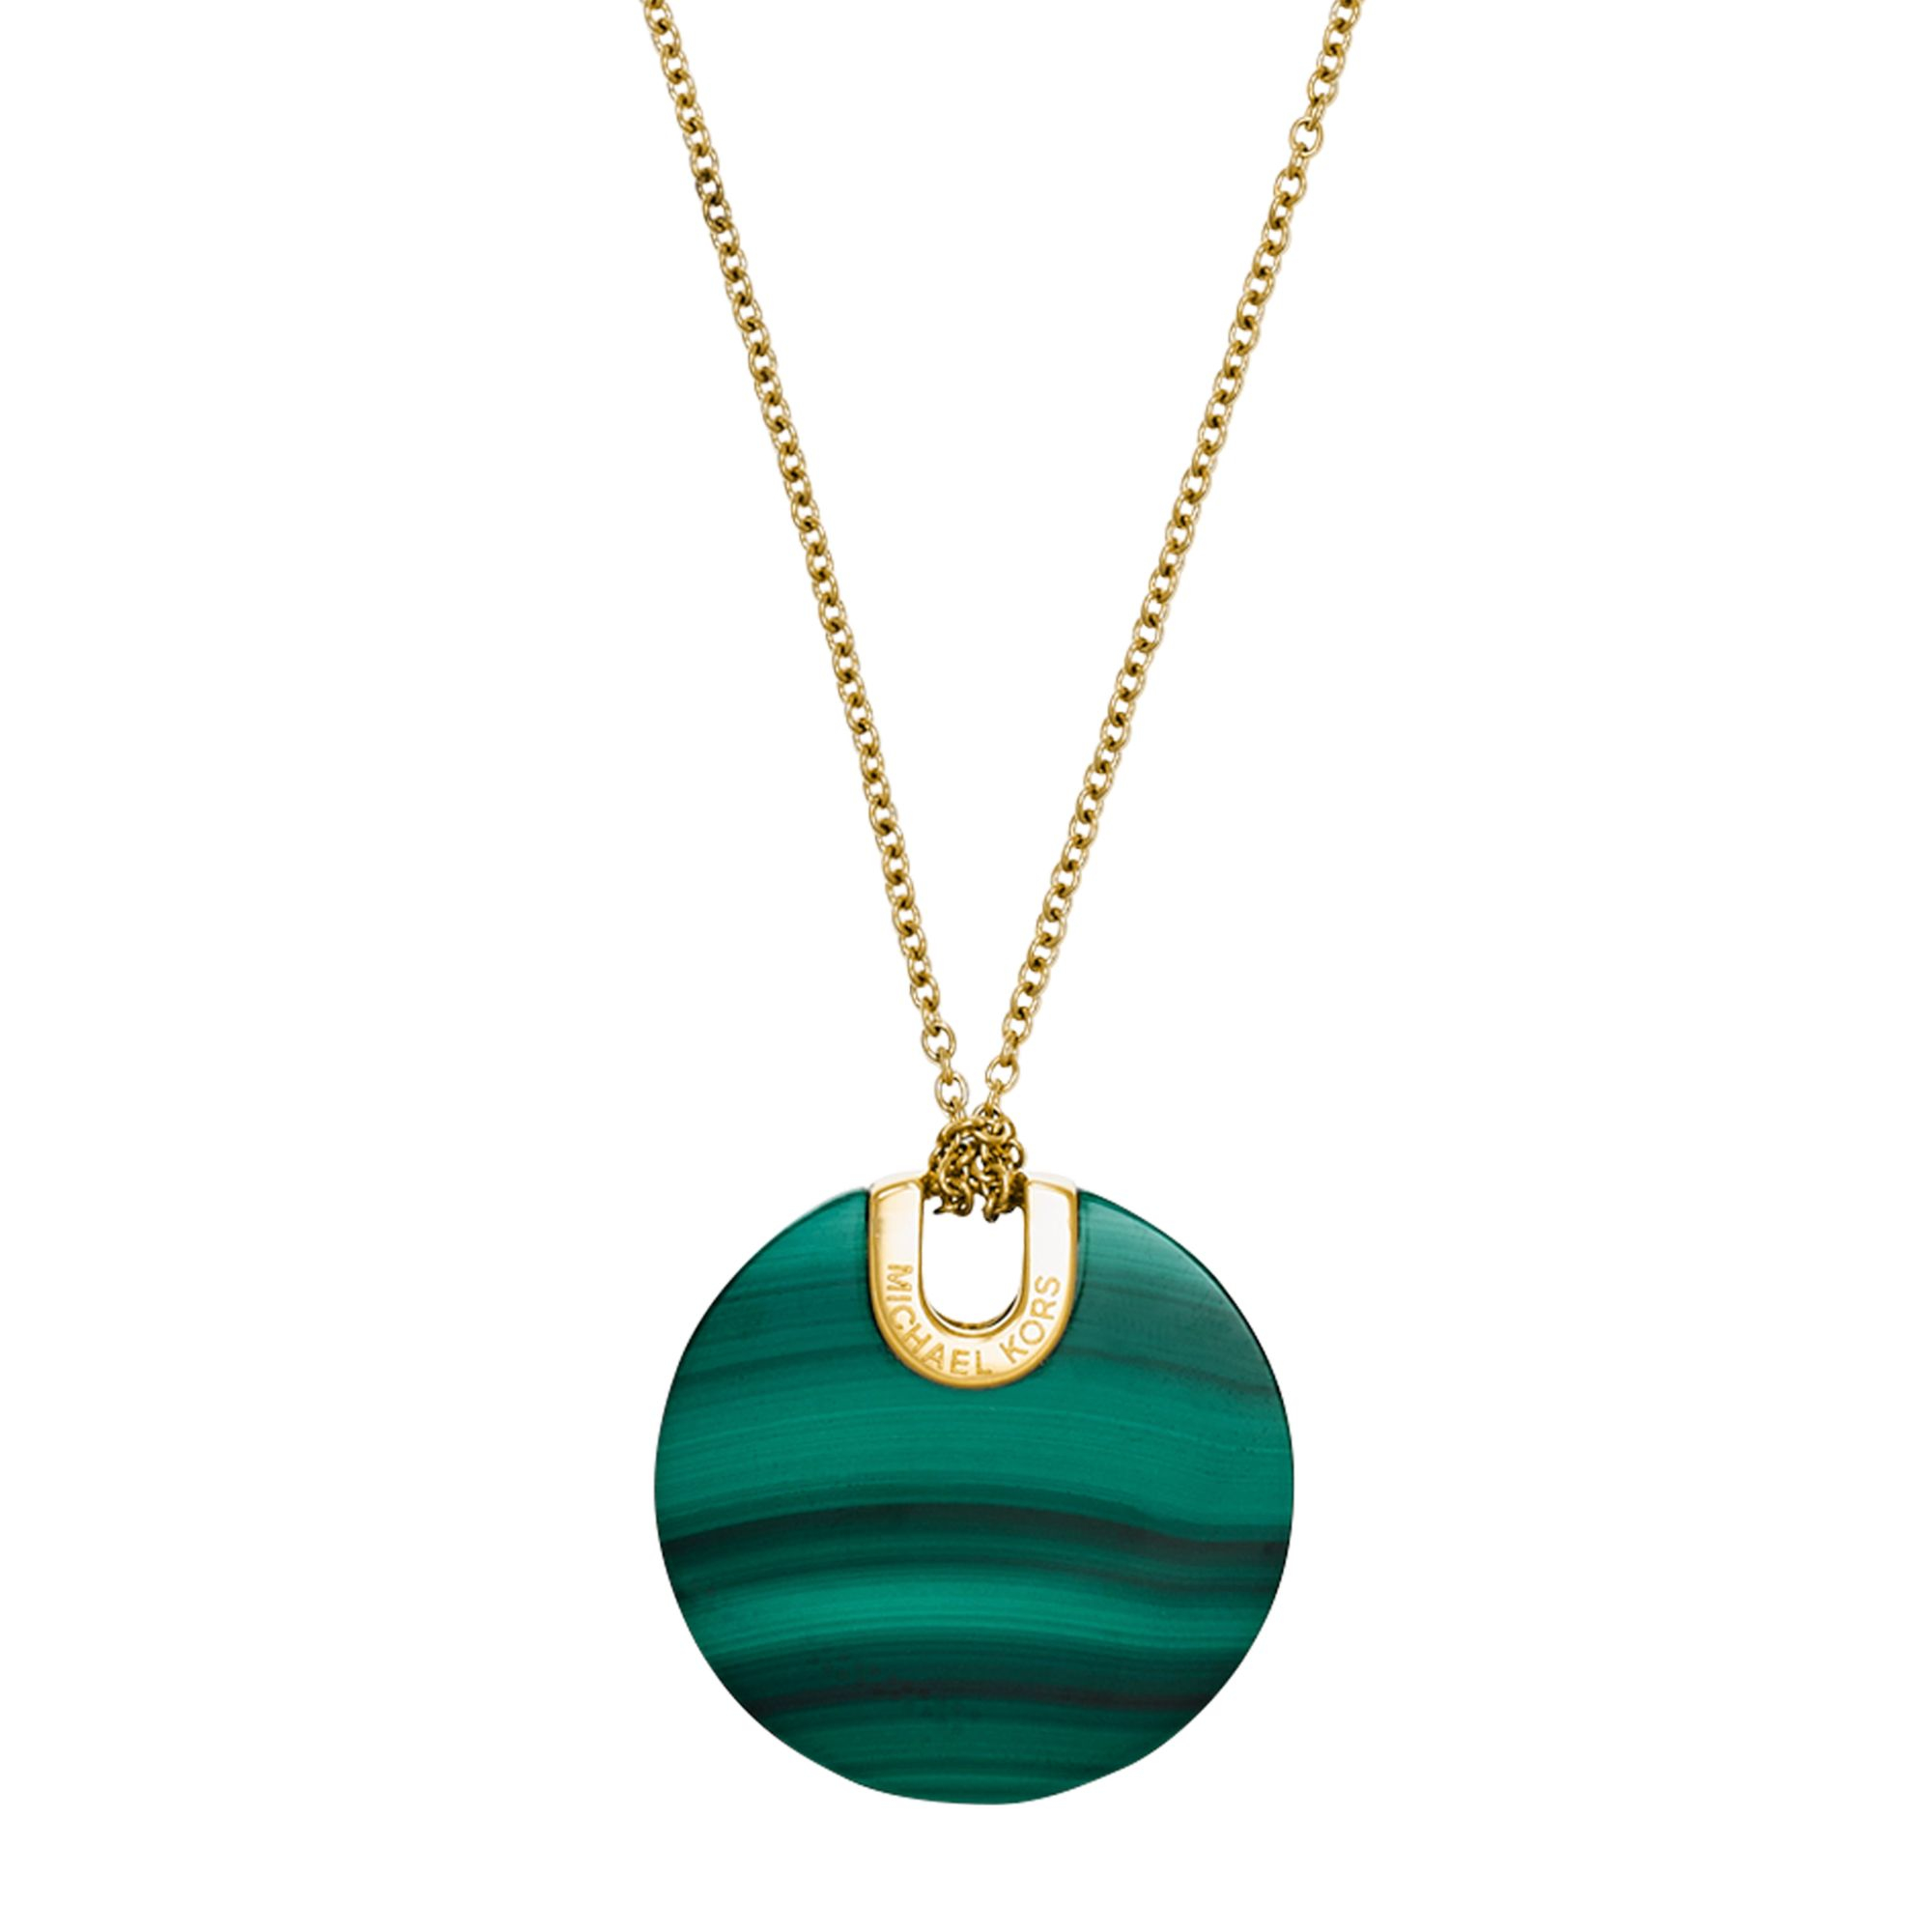 michael kors gold tone malachite pendant necklace in